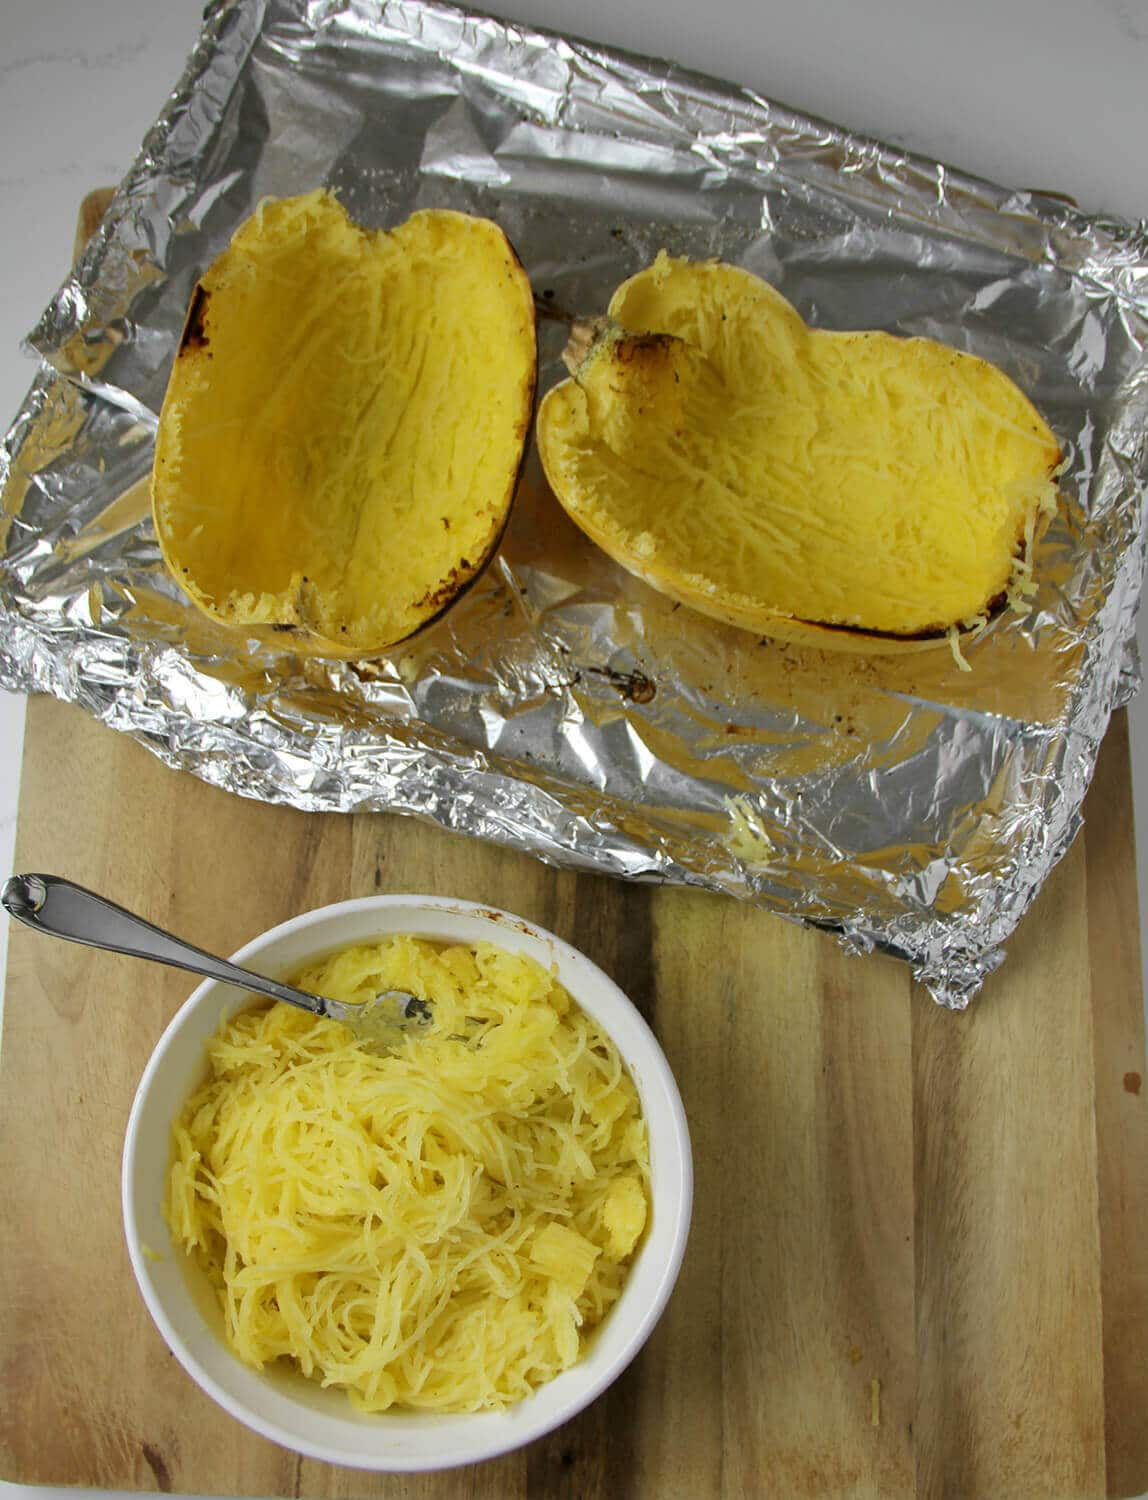 Roasted Spaghetti Squash is a healthy alternative to carb-heavy dishes like pasta and rice. It's nutritious and delicious and super easy to prepare!